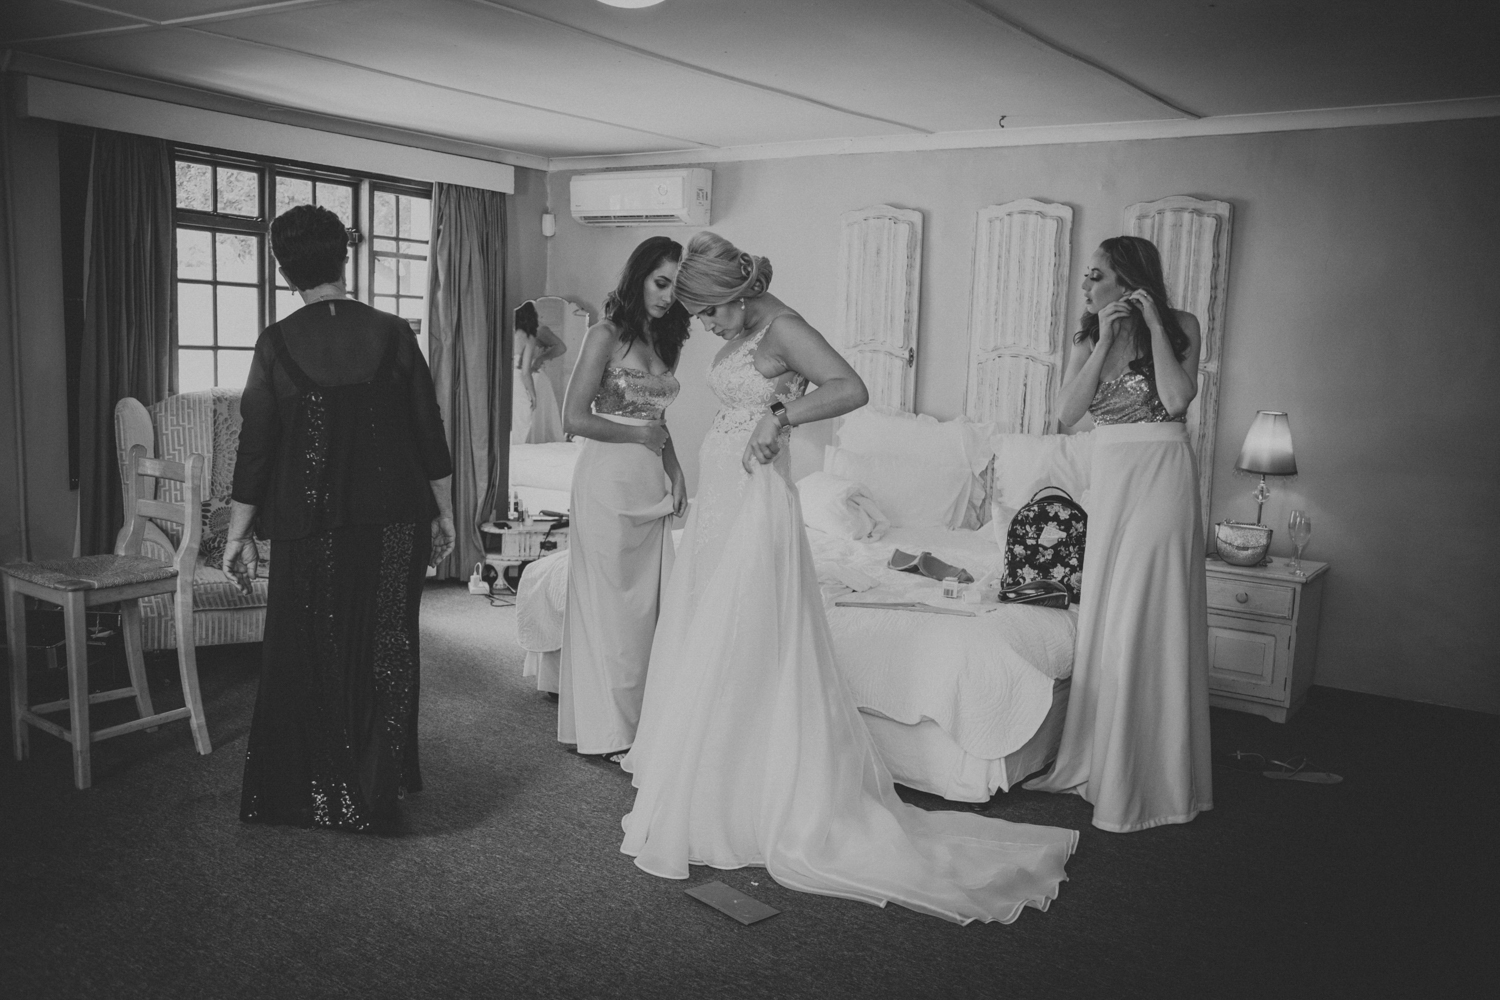 Elegant Country Wedding Cape Town - Bianca Asher Photography-23.jpg